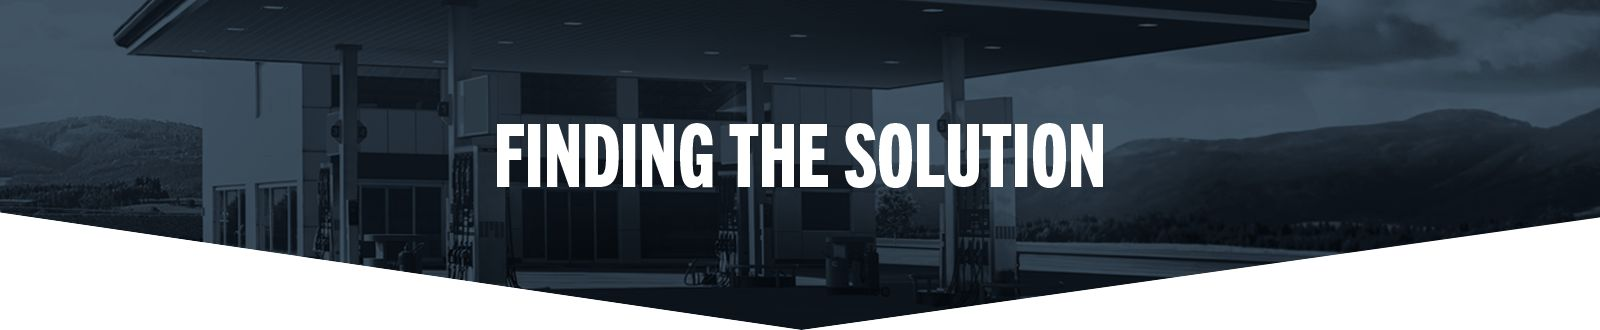 Finding-The-Solution-Banner.psd